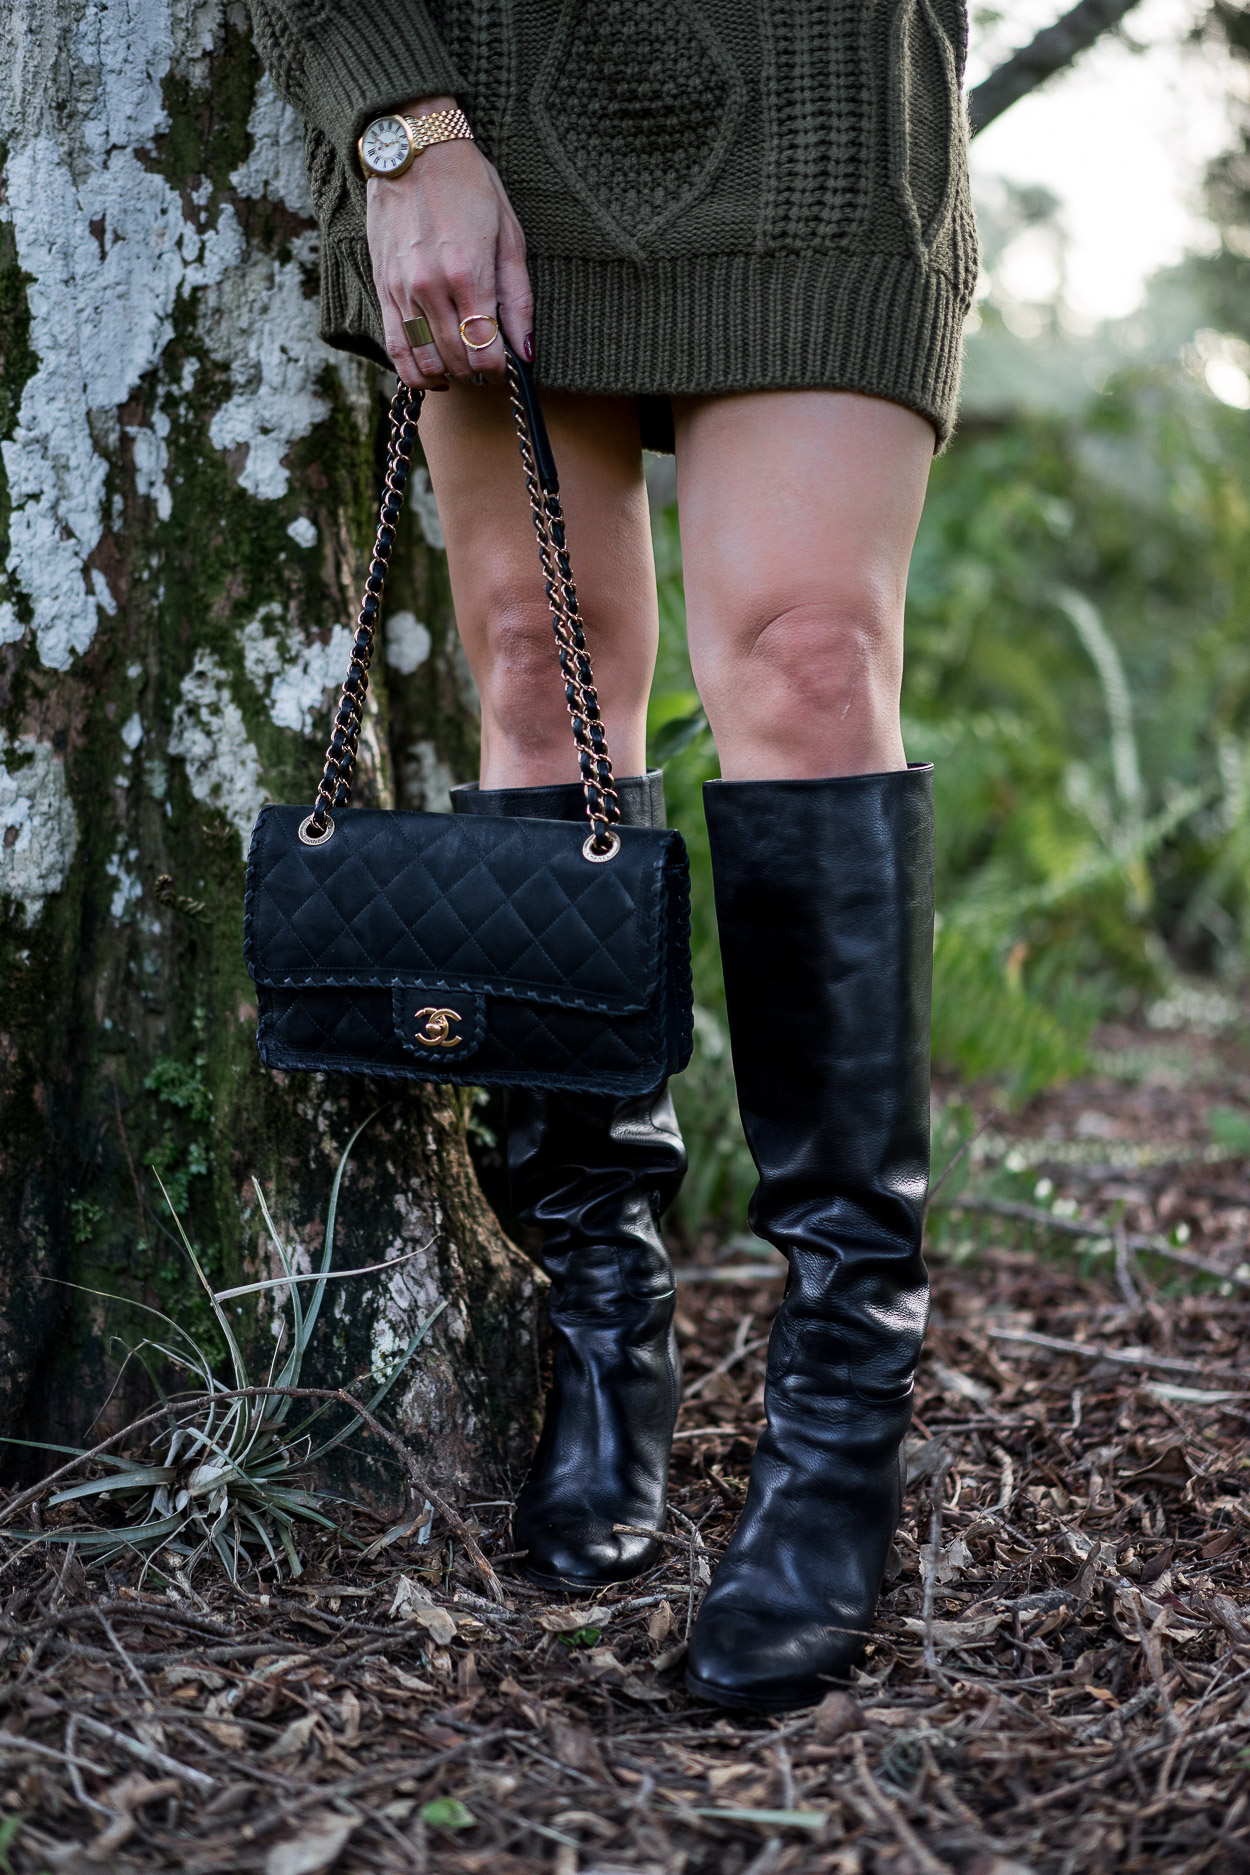 Pair M Gemi Pendolo boots with a classic Chanel bag for Fall a la AGlamLifestyle South Florida blogger